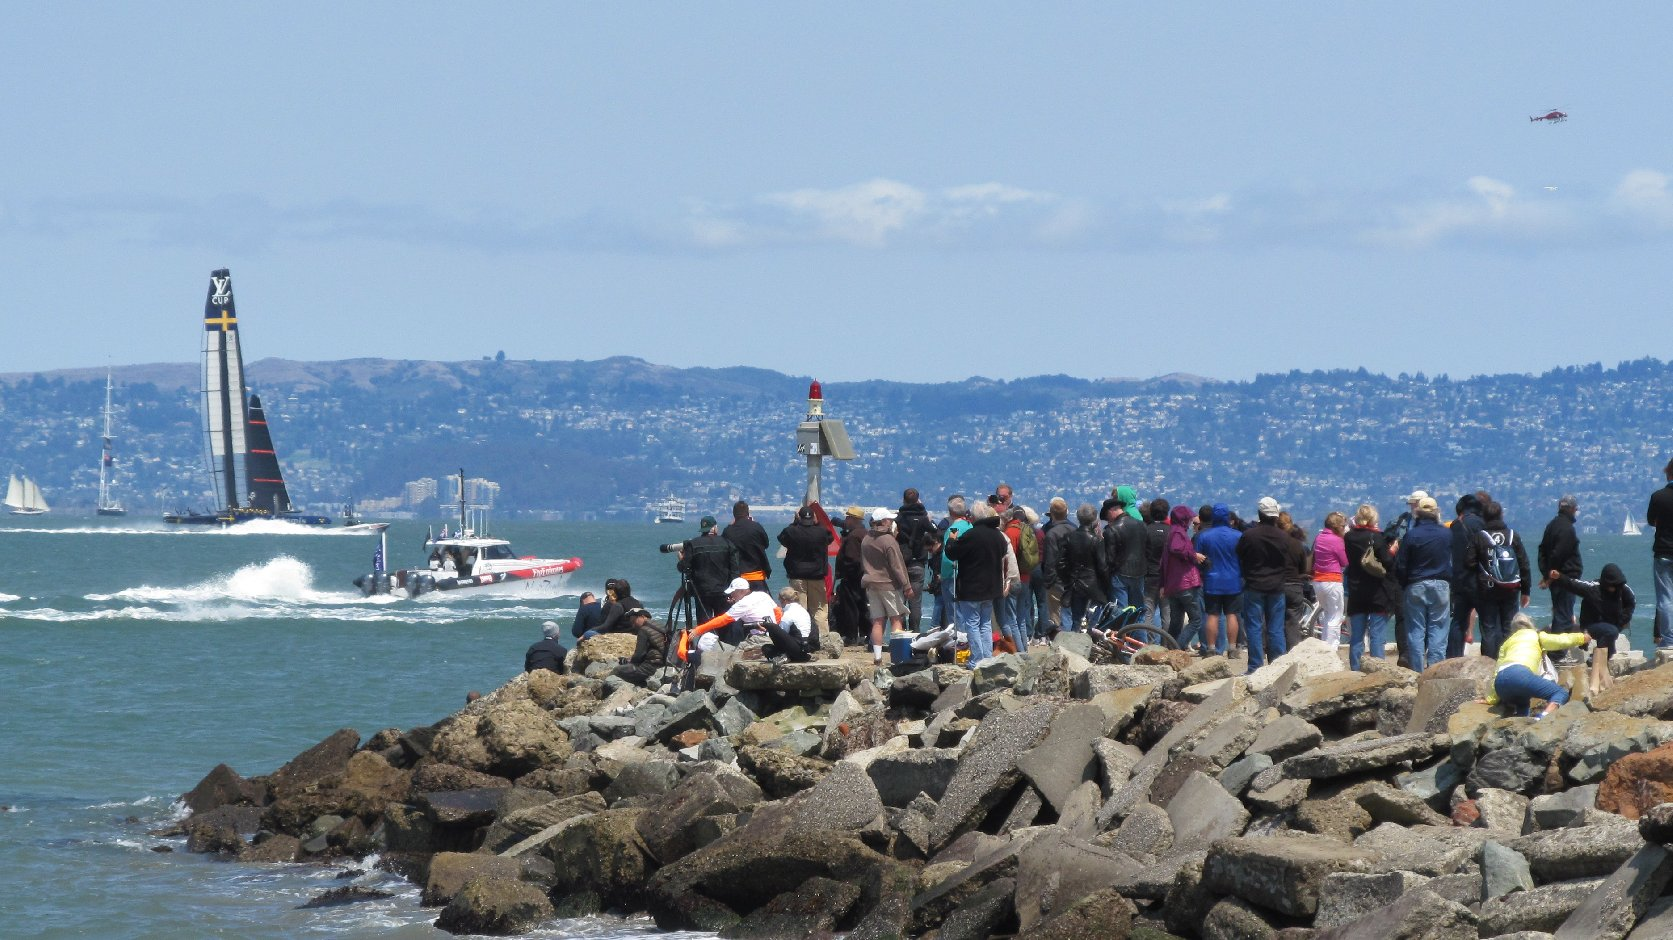 One of the the best viewing spots for the America's Cup is the jetty near Land's End. (Mike Osborne/KQED)